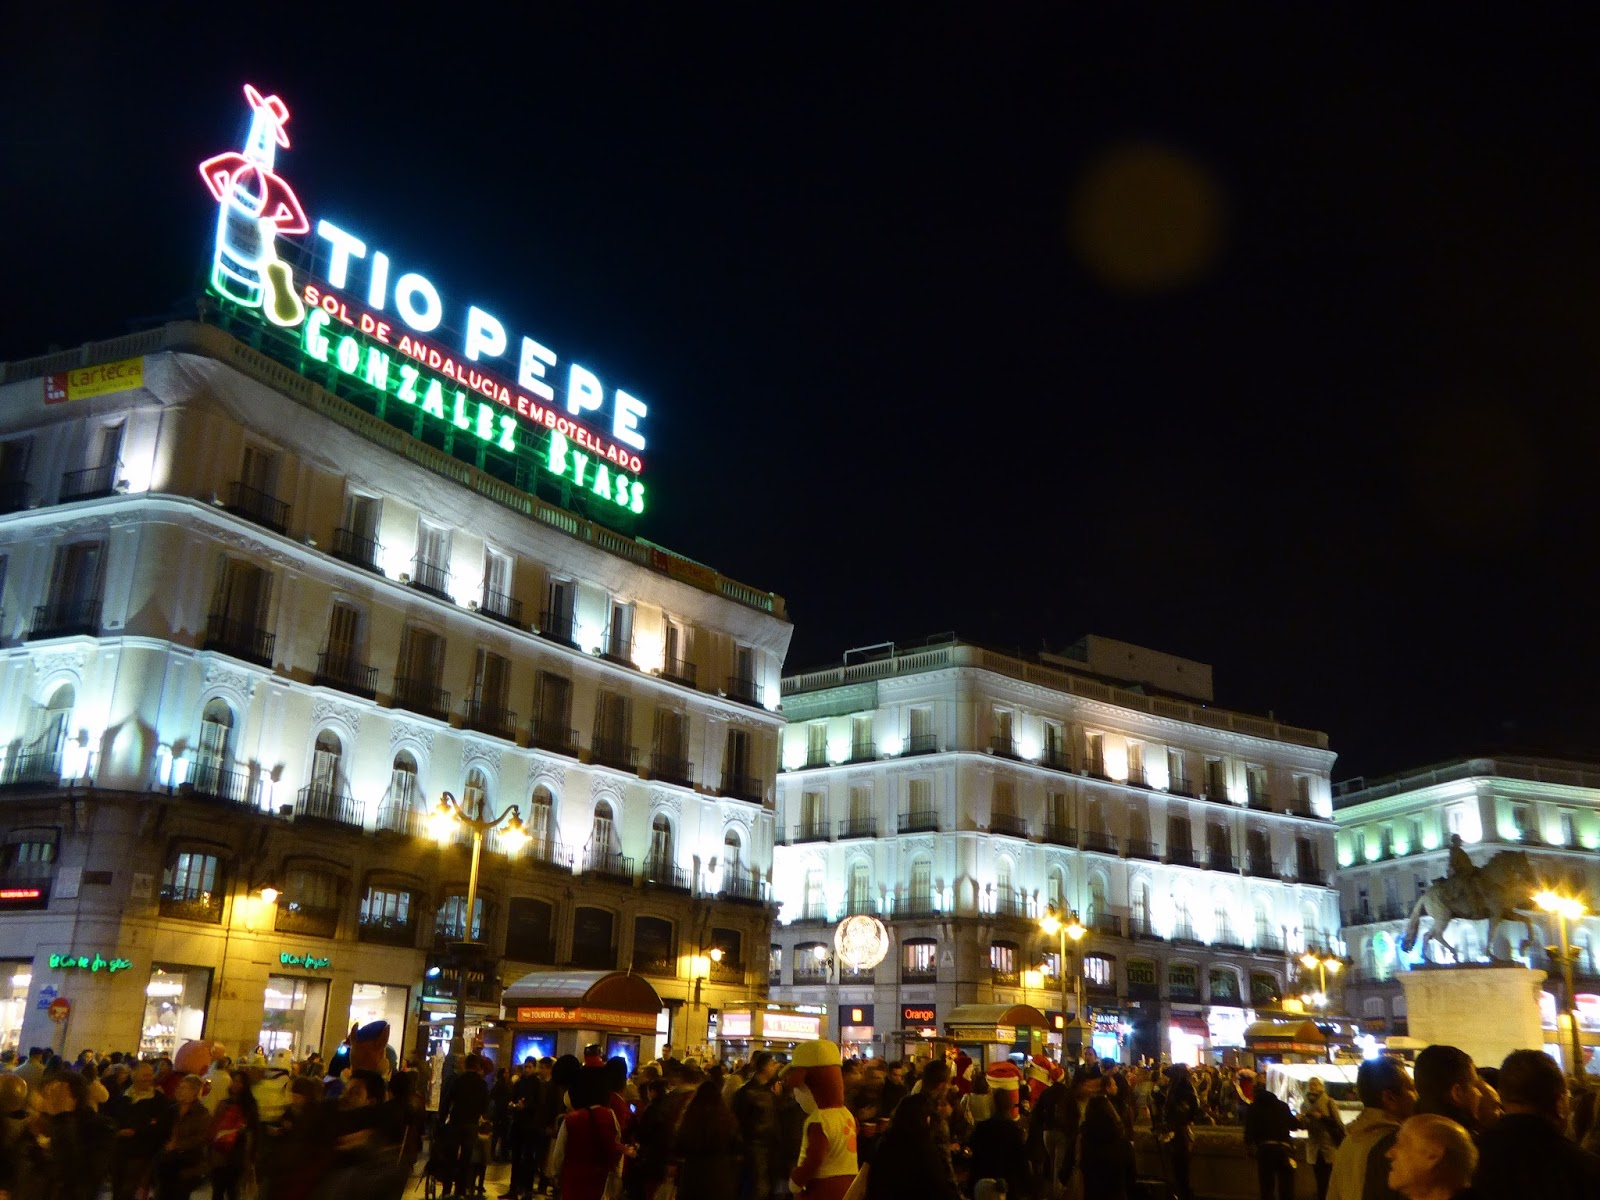 Traveling by gatufo madrid is not olympic for Km 0 puerta del sol